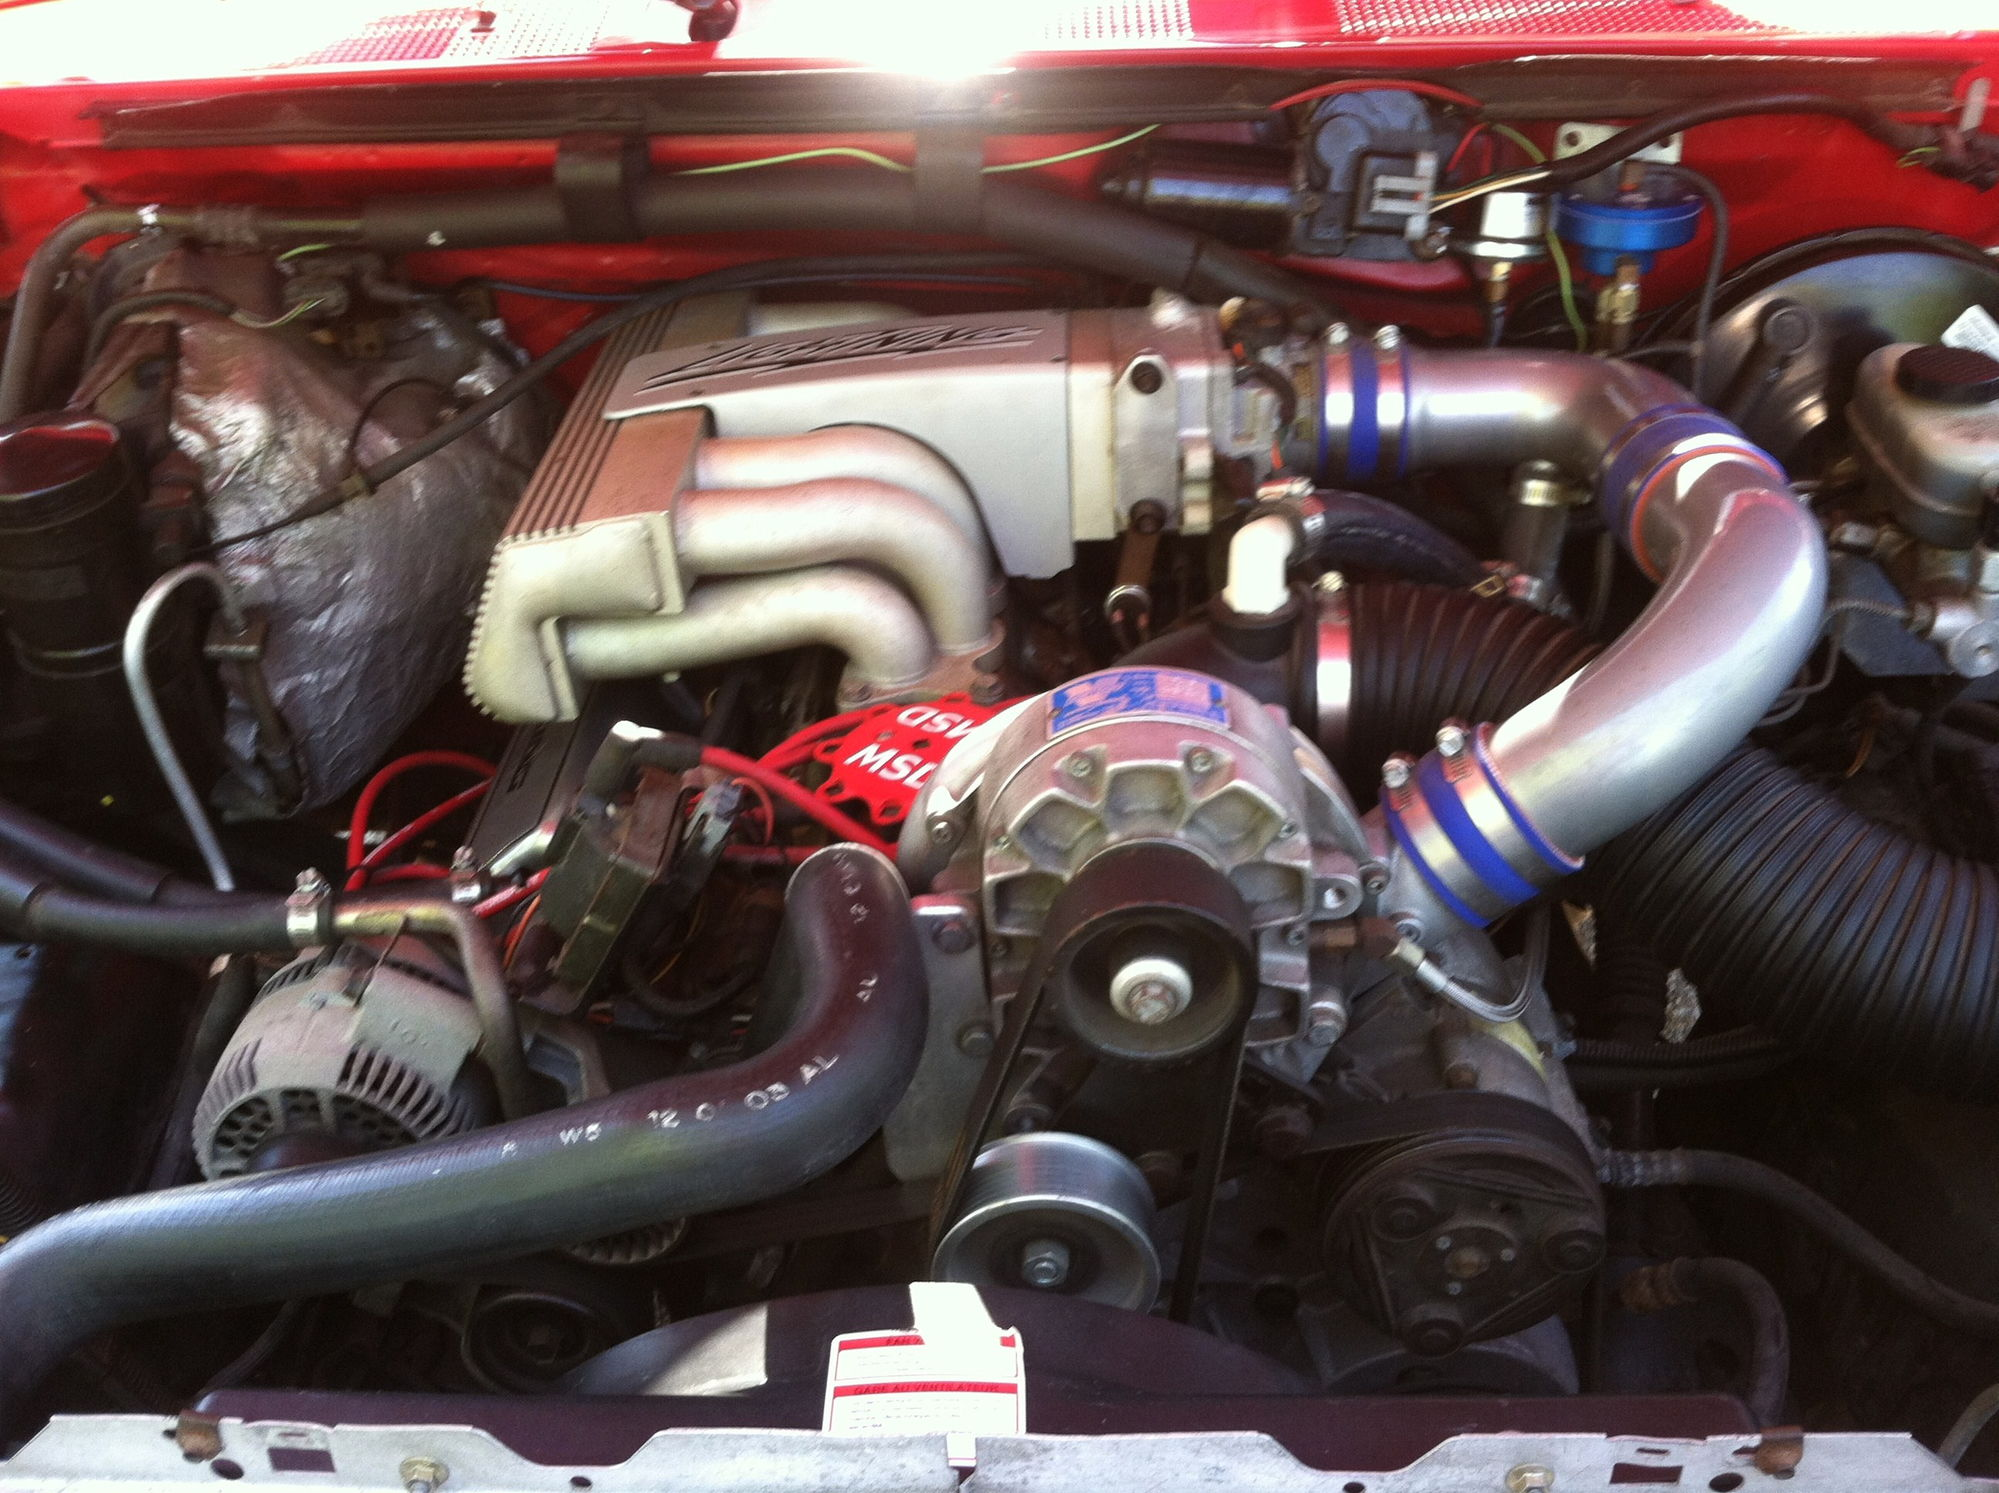 Edelbrock Intake likewise D T F Lift Ideas Image as well  further D Ford F Evap Leak Failed Emissions Photo together with Imgp. on 1995 ford f 150 starter